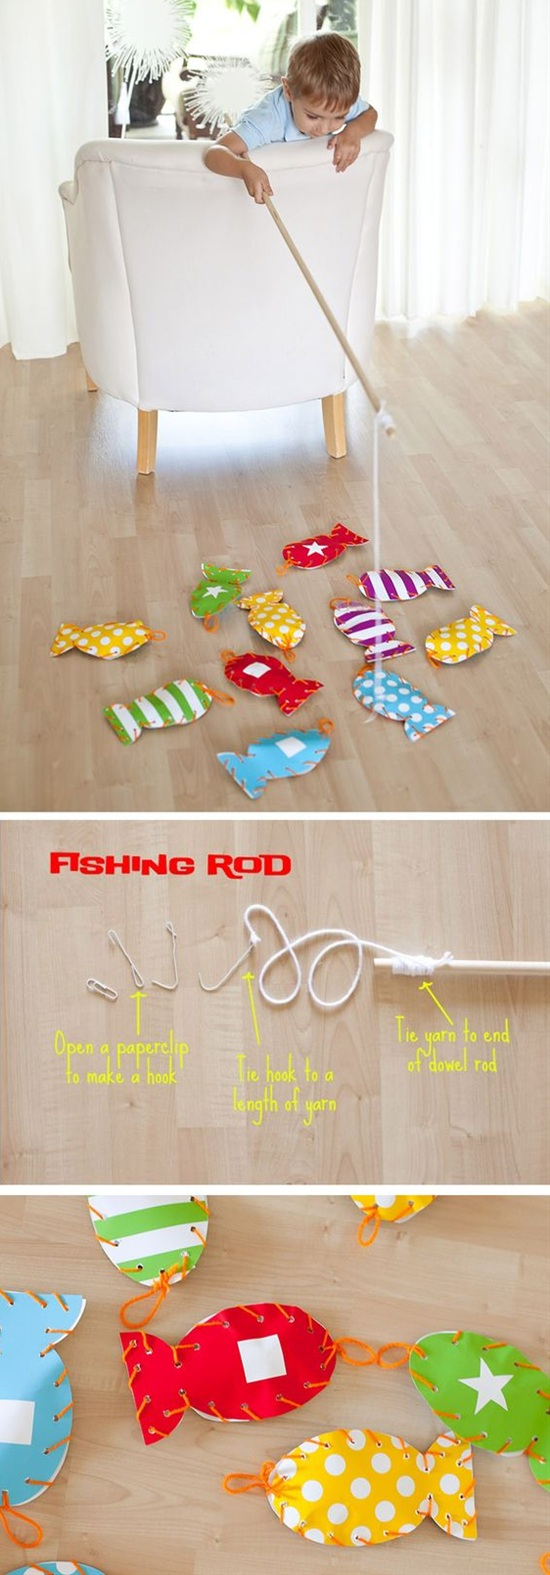 DIY Gone Fishing Matching Game for Kids Tutorial via Frog Prince Paperie